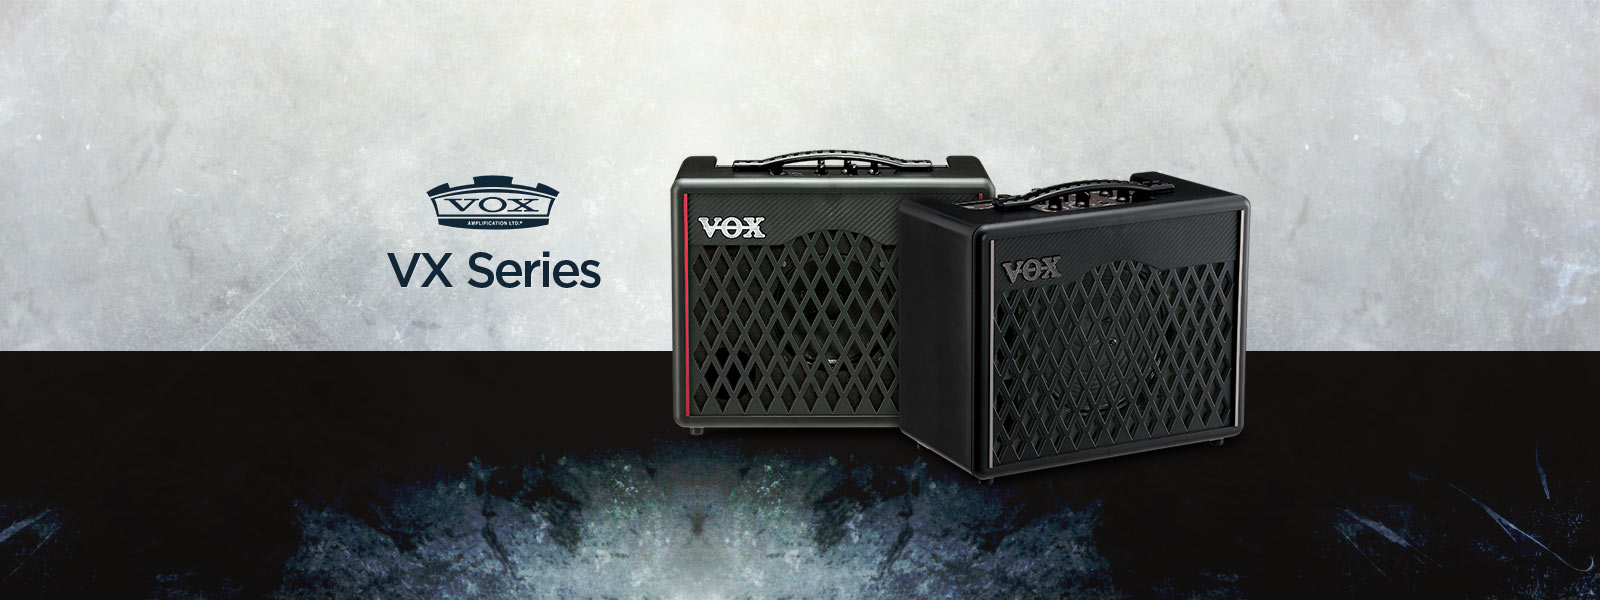 VOX V X Series Amplifiers